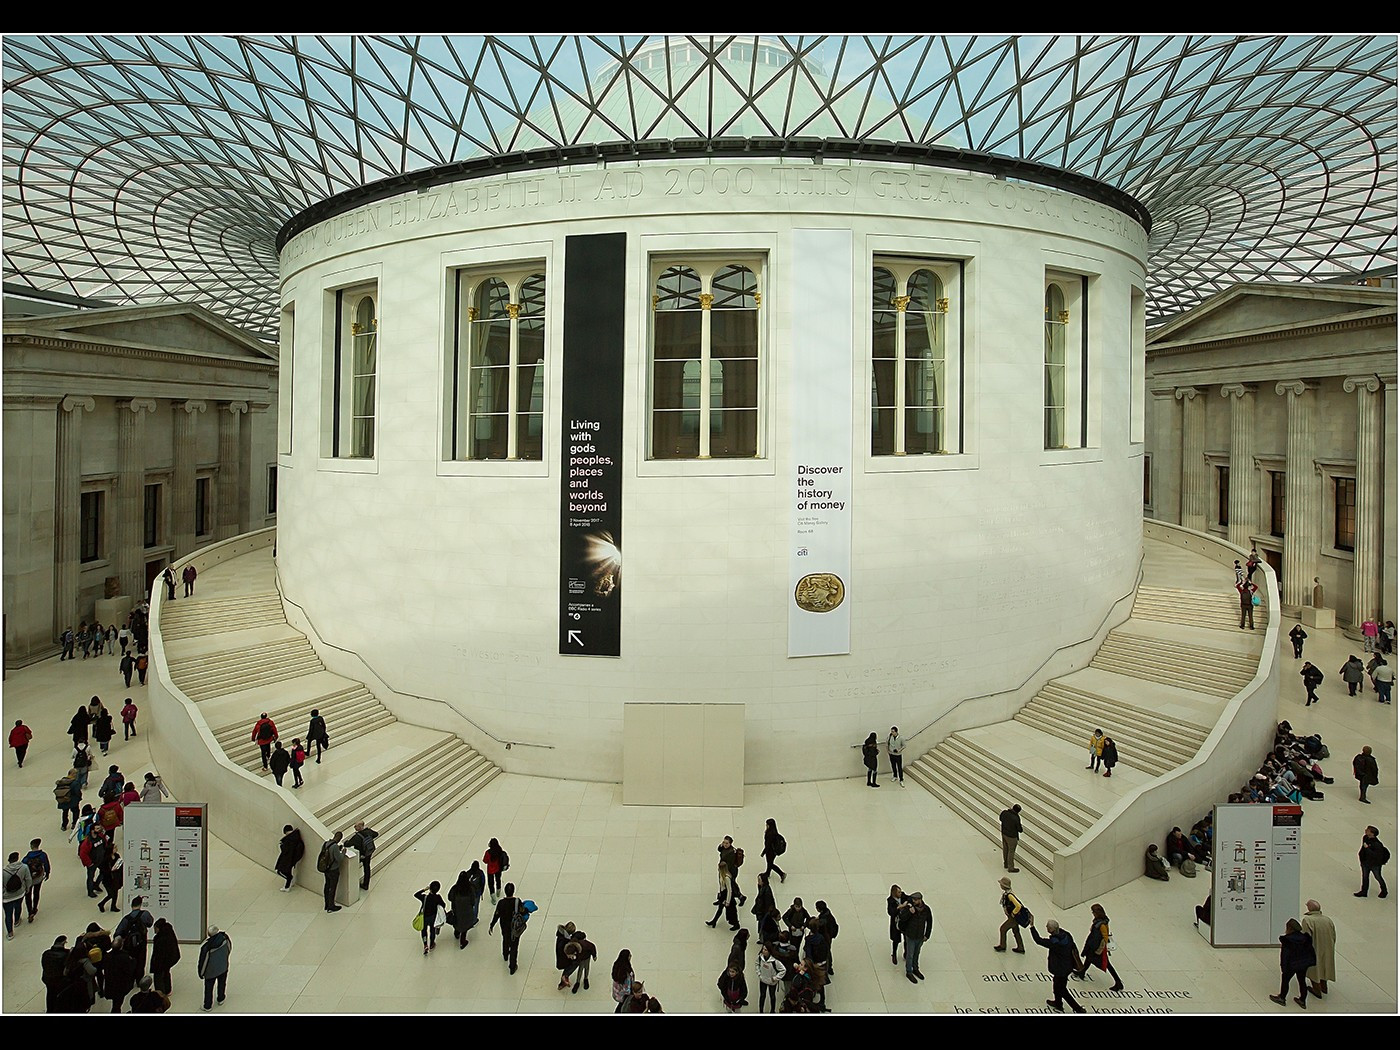 British Museum London - A Popular Tourist Attraction